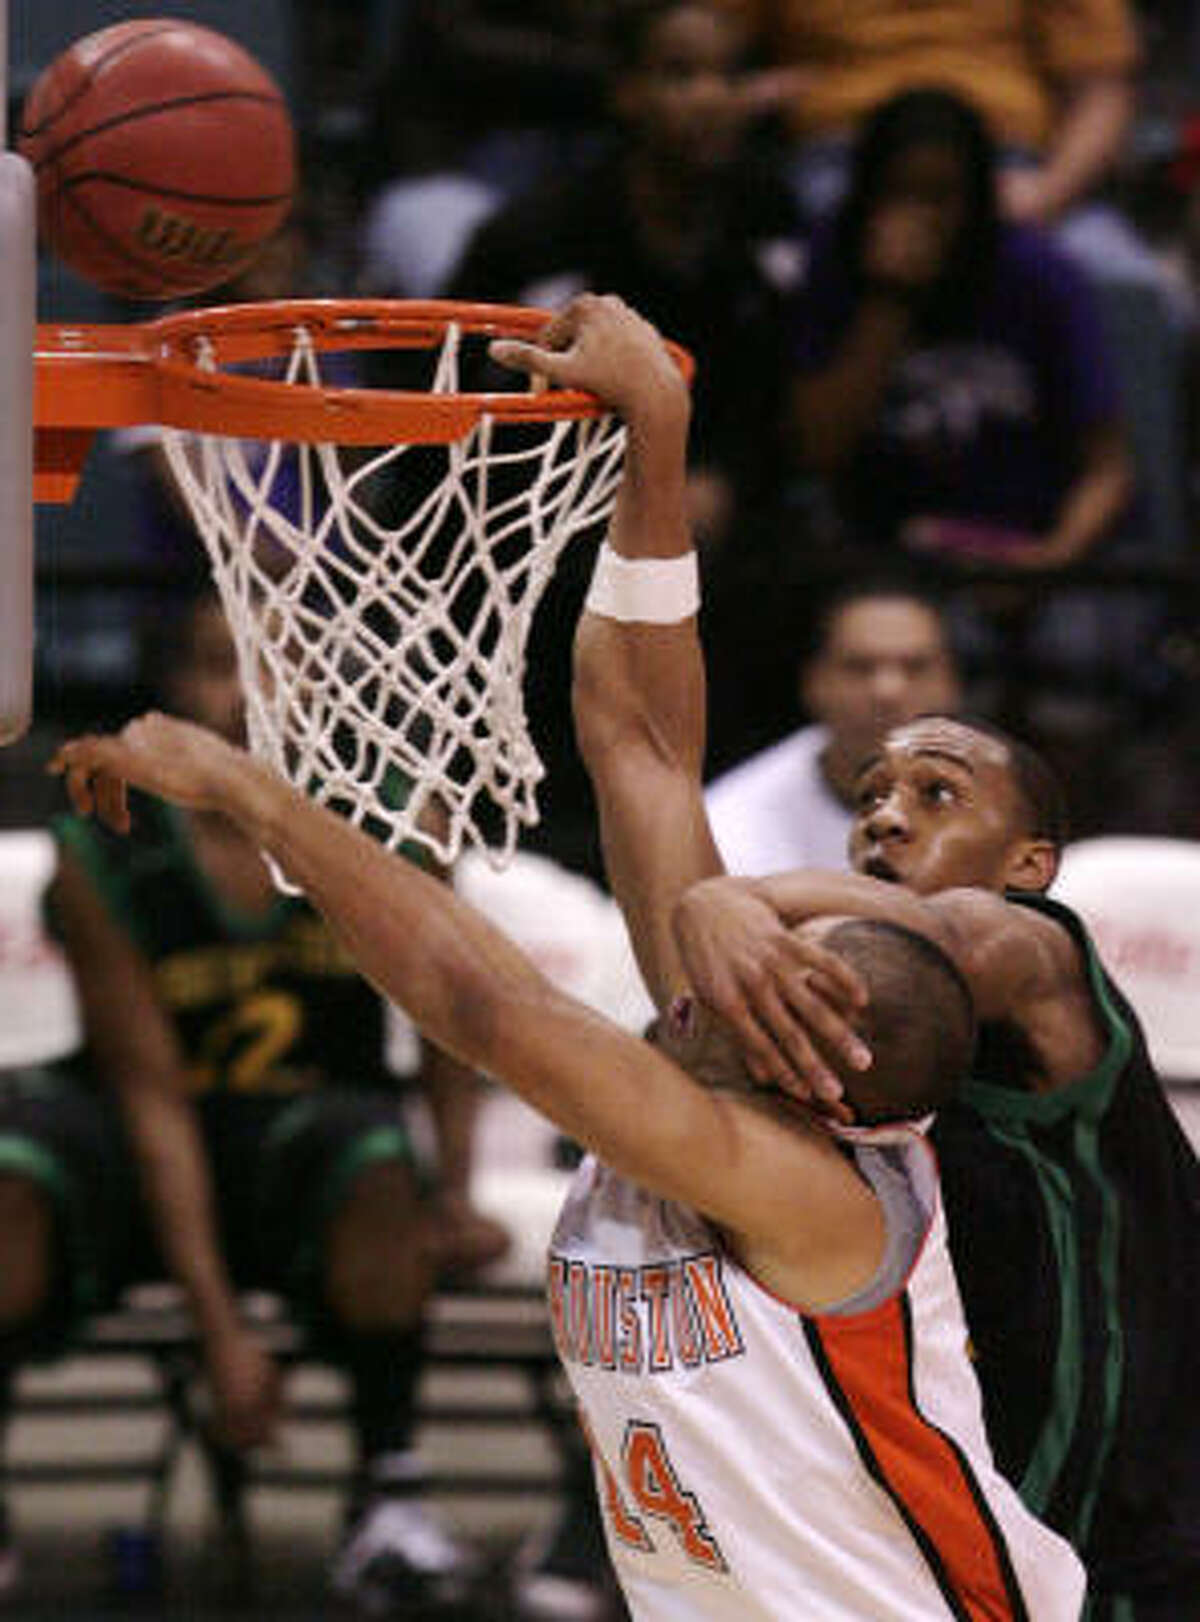 March 11: Sam Houston State 88, Southeastern Louisiana 85 Sam Houston State forward Gilberto Clavell on an attempted dunk takes a hand to the face from Southeastern Louisiana center Patrick Sullivan during the semifinals of the Southland Conference Tournament in Katy.